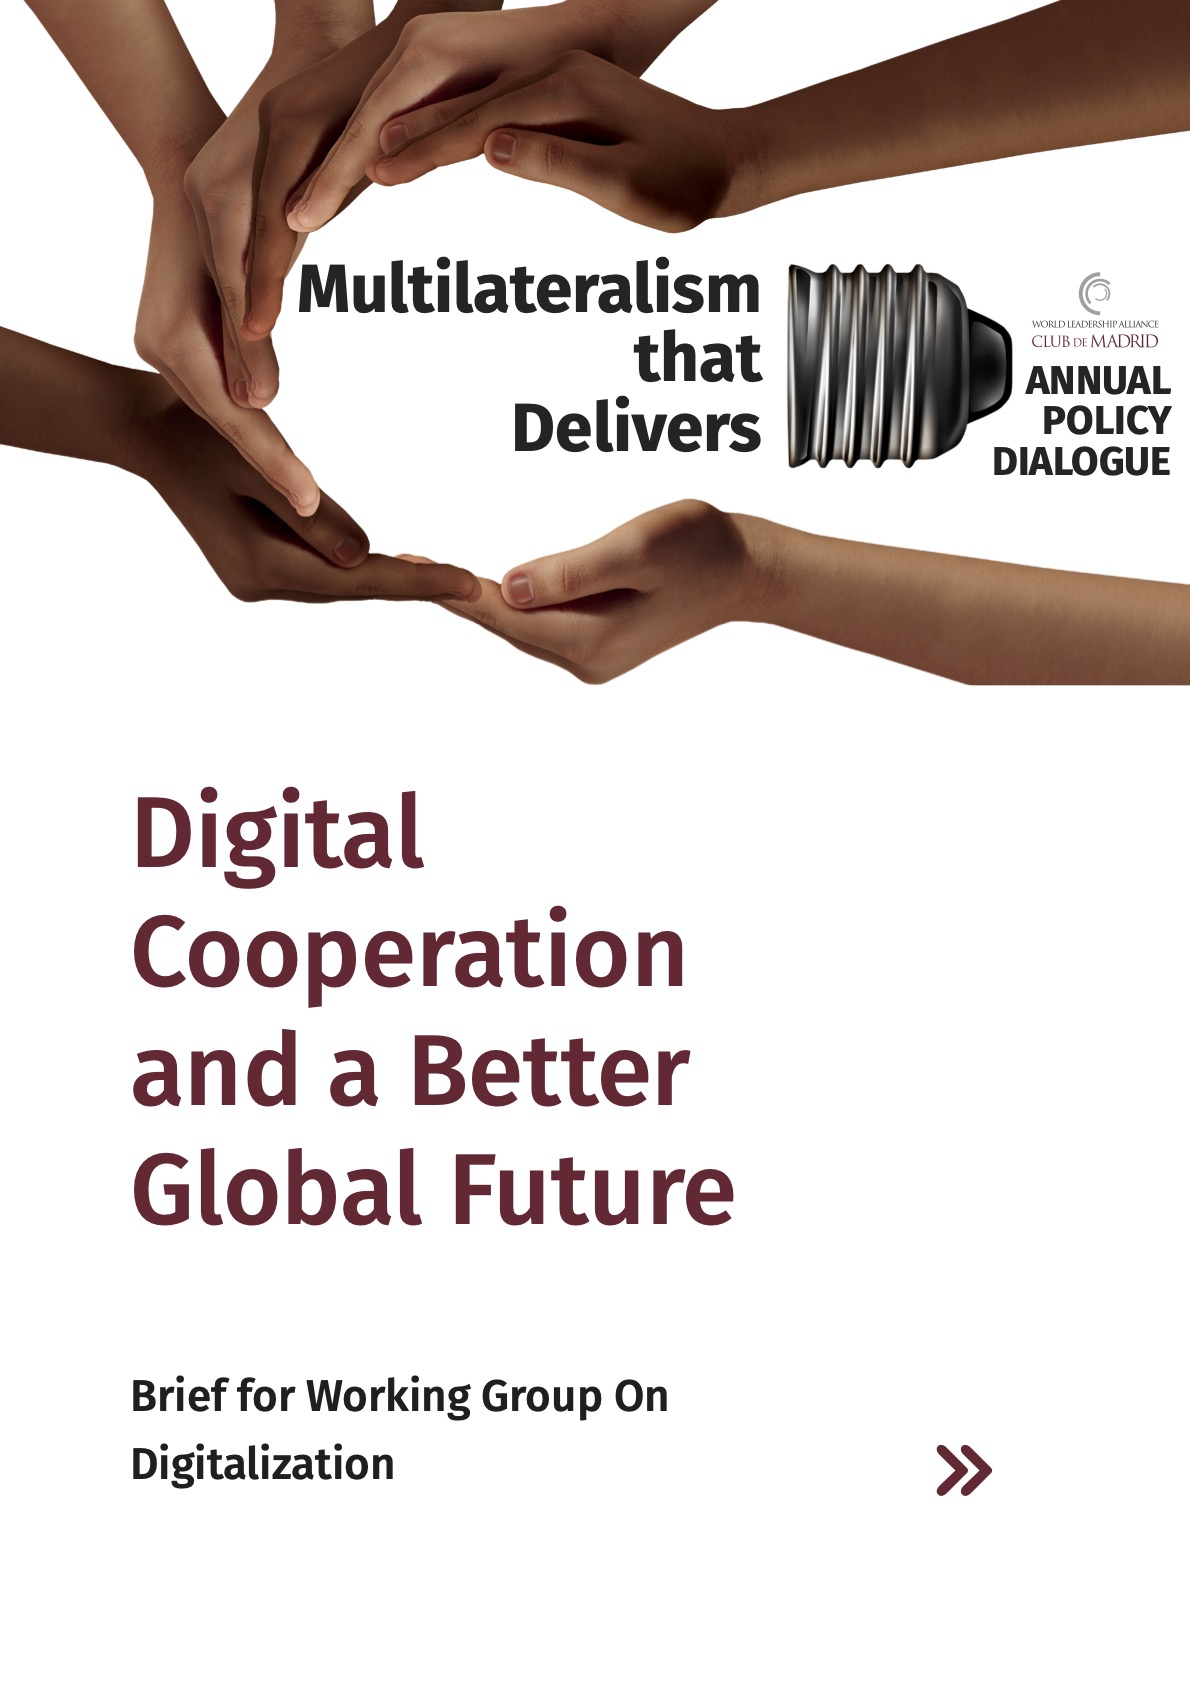 Digital Cooperation for a Better Global Future